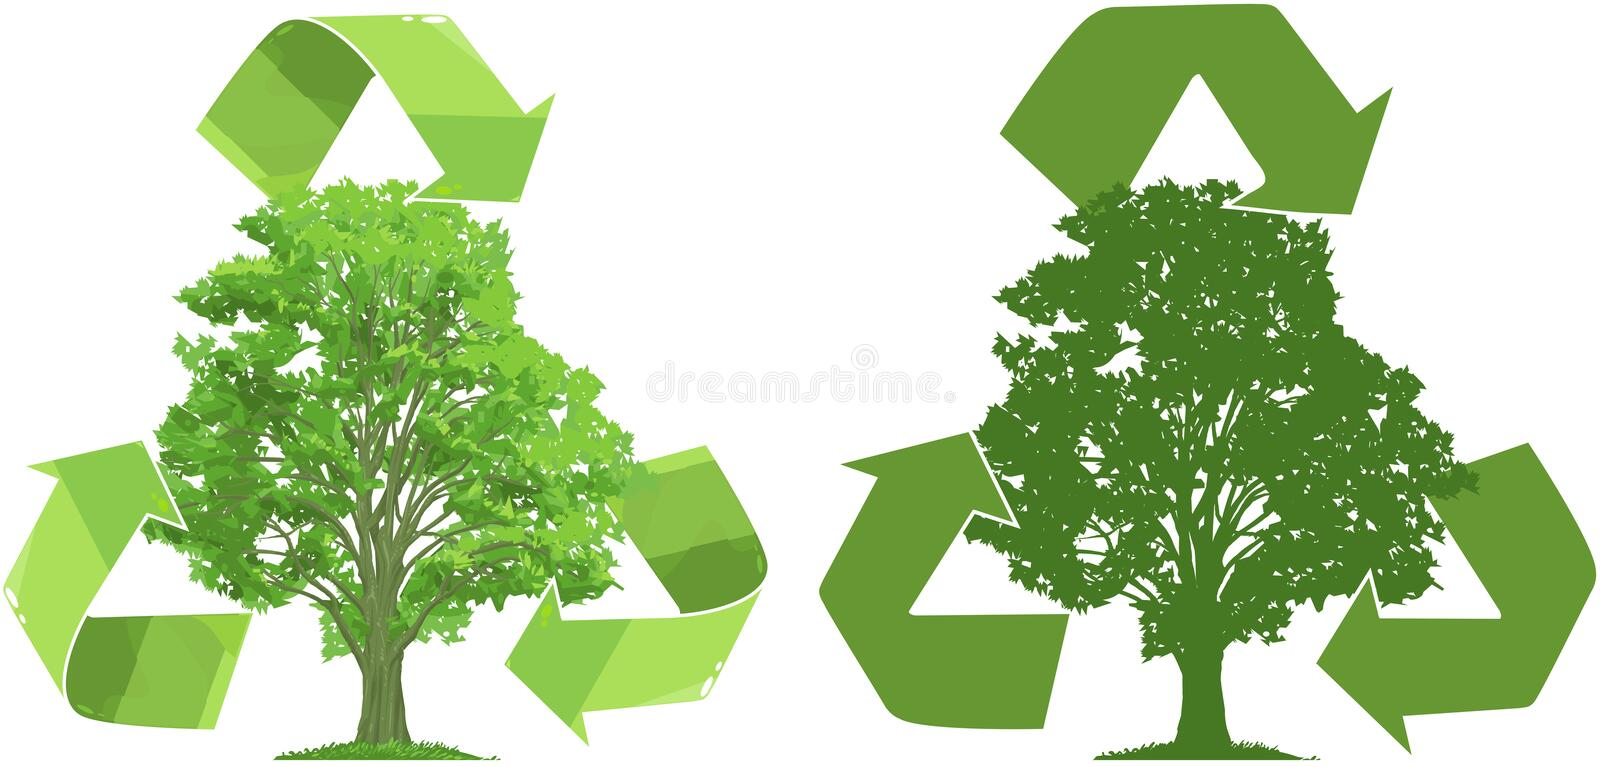 Recycle For Trees Royalty Free Stock Photography